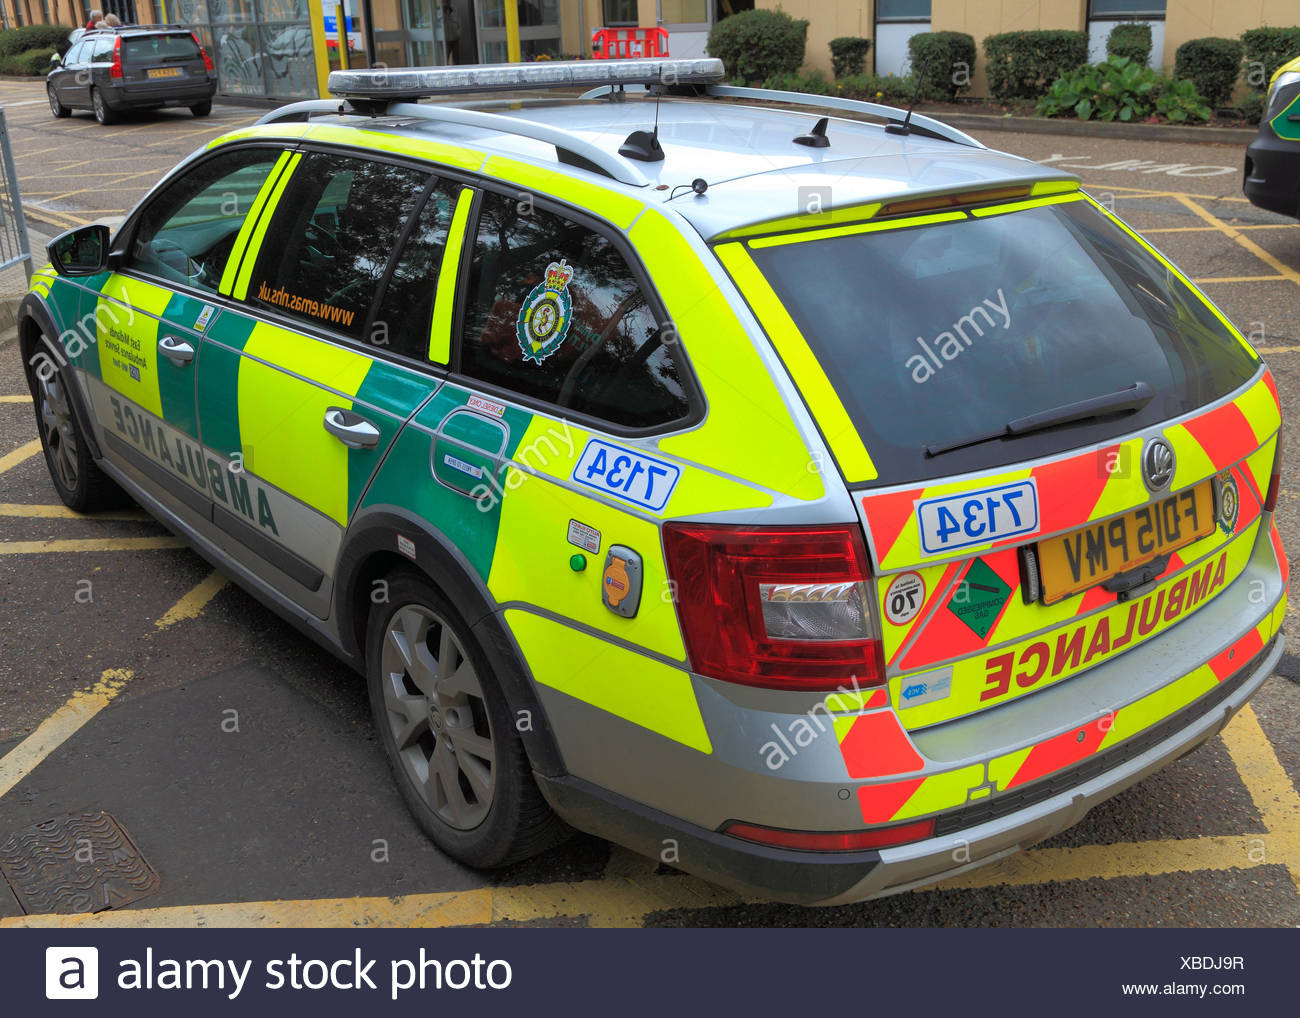 East Midlands Stock Photos & East Midlands Stock Images - Alamy